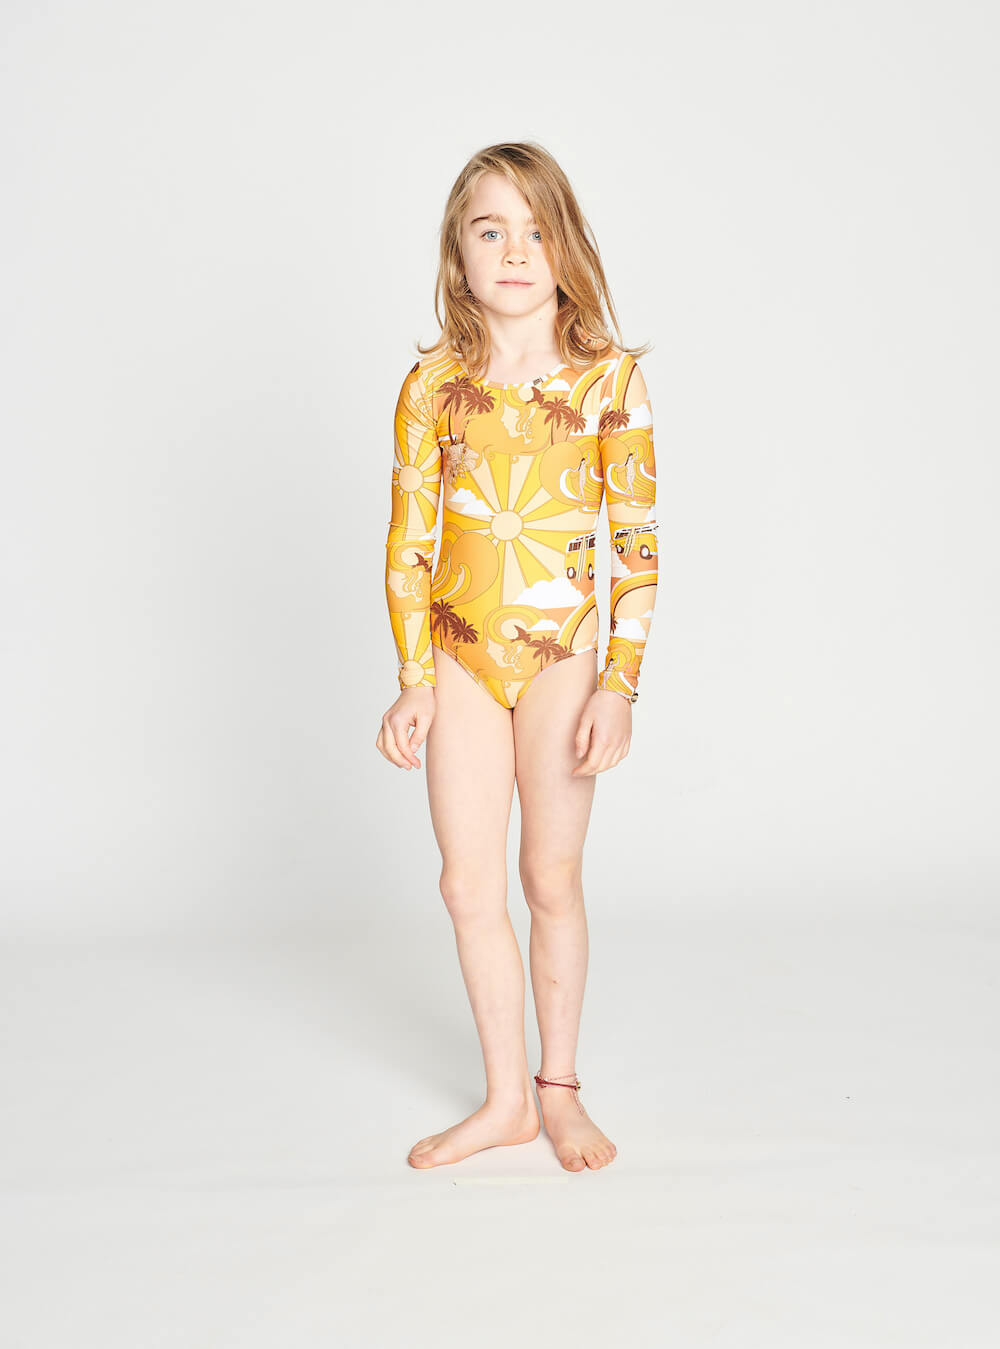 Missie Munster Big Wednesday Onepiece | Tiny People